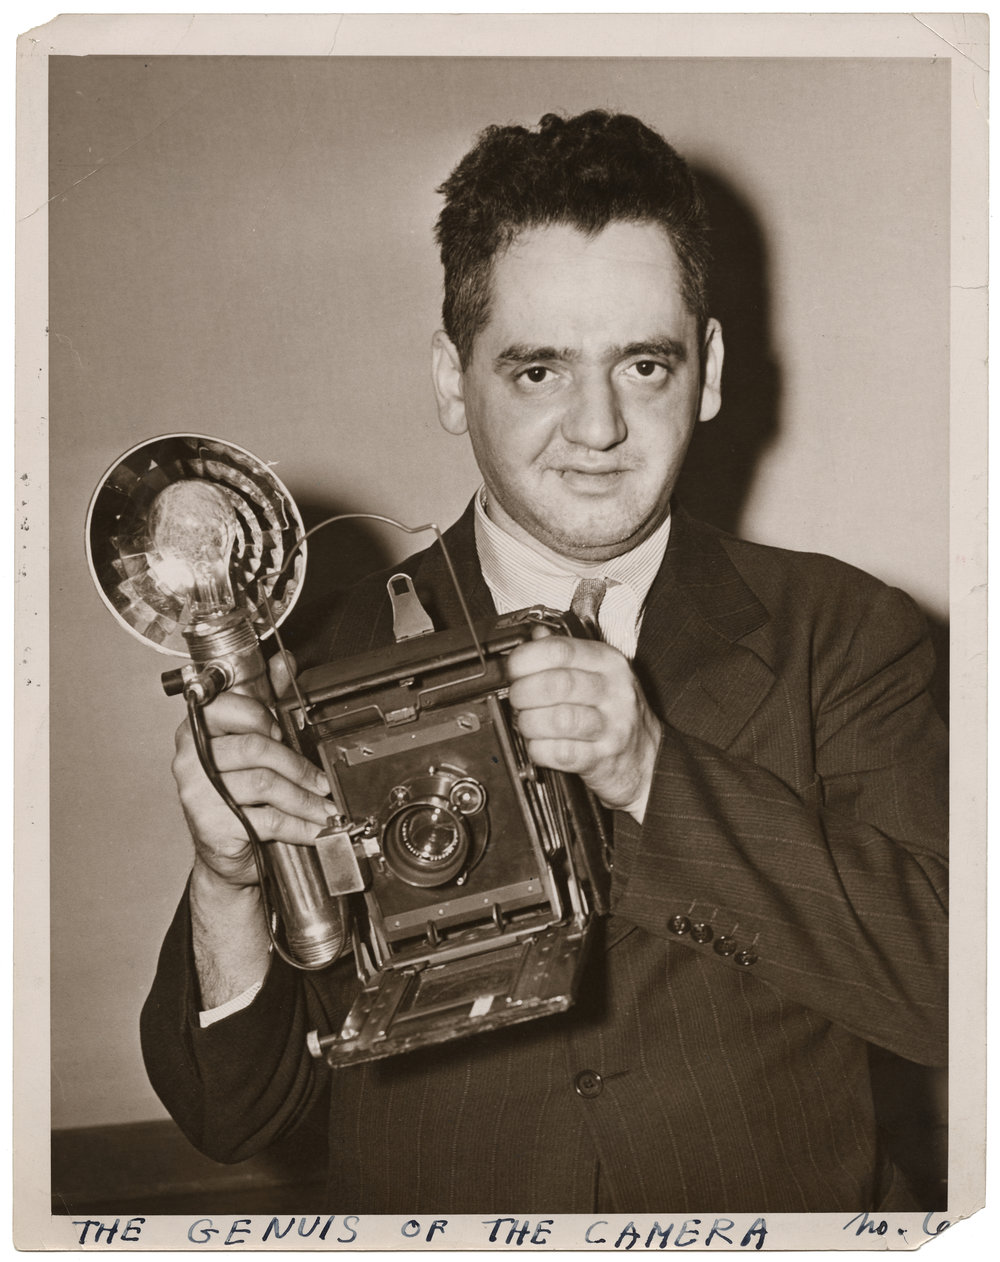 Weegee, The Genius of the Camera, ca. 1938. © International Center of Photography/Getty Images, Courtesy International Center of Photography, New York